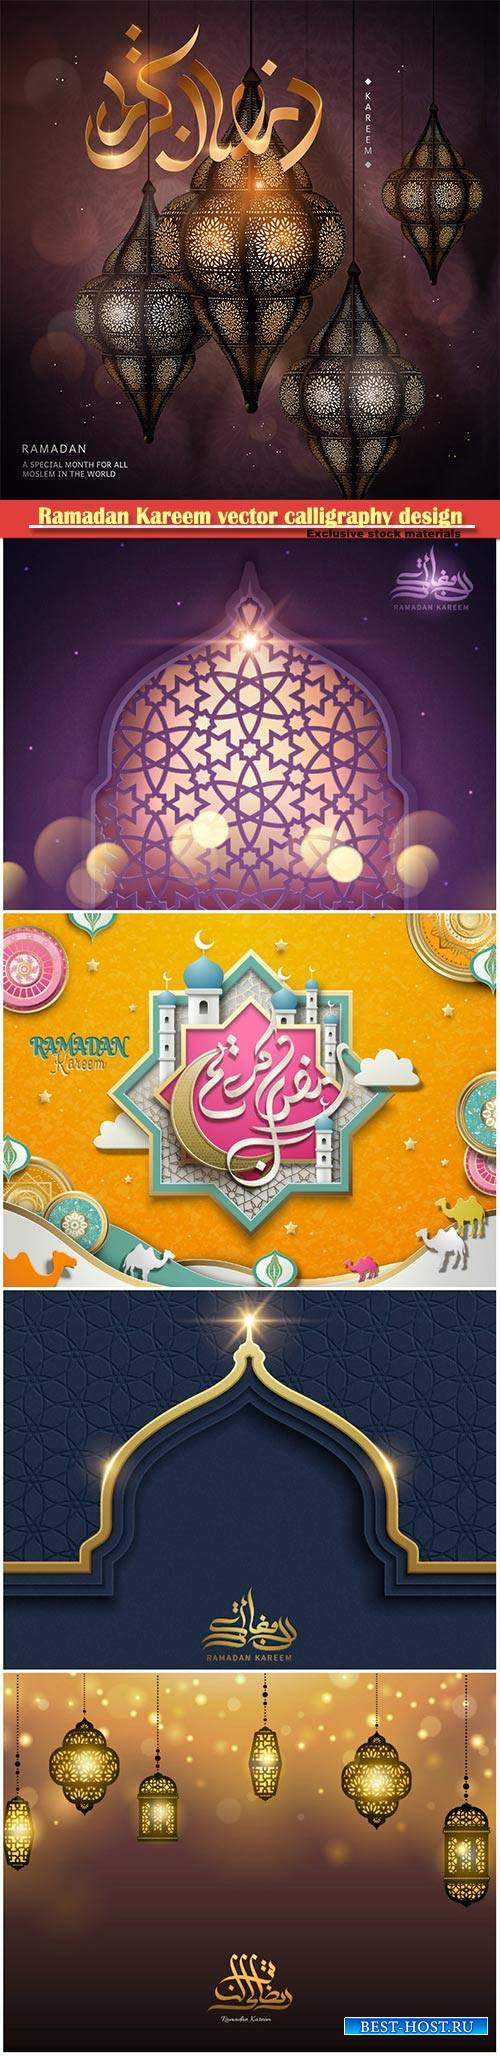 Ramadan Kareem vector calligraphy design with decorative floral pattern,mosque silhouette, crescent and glittering islamic background # 15